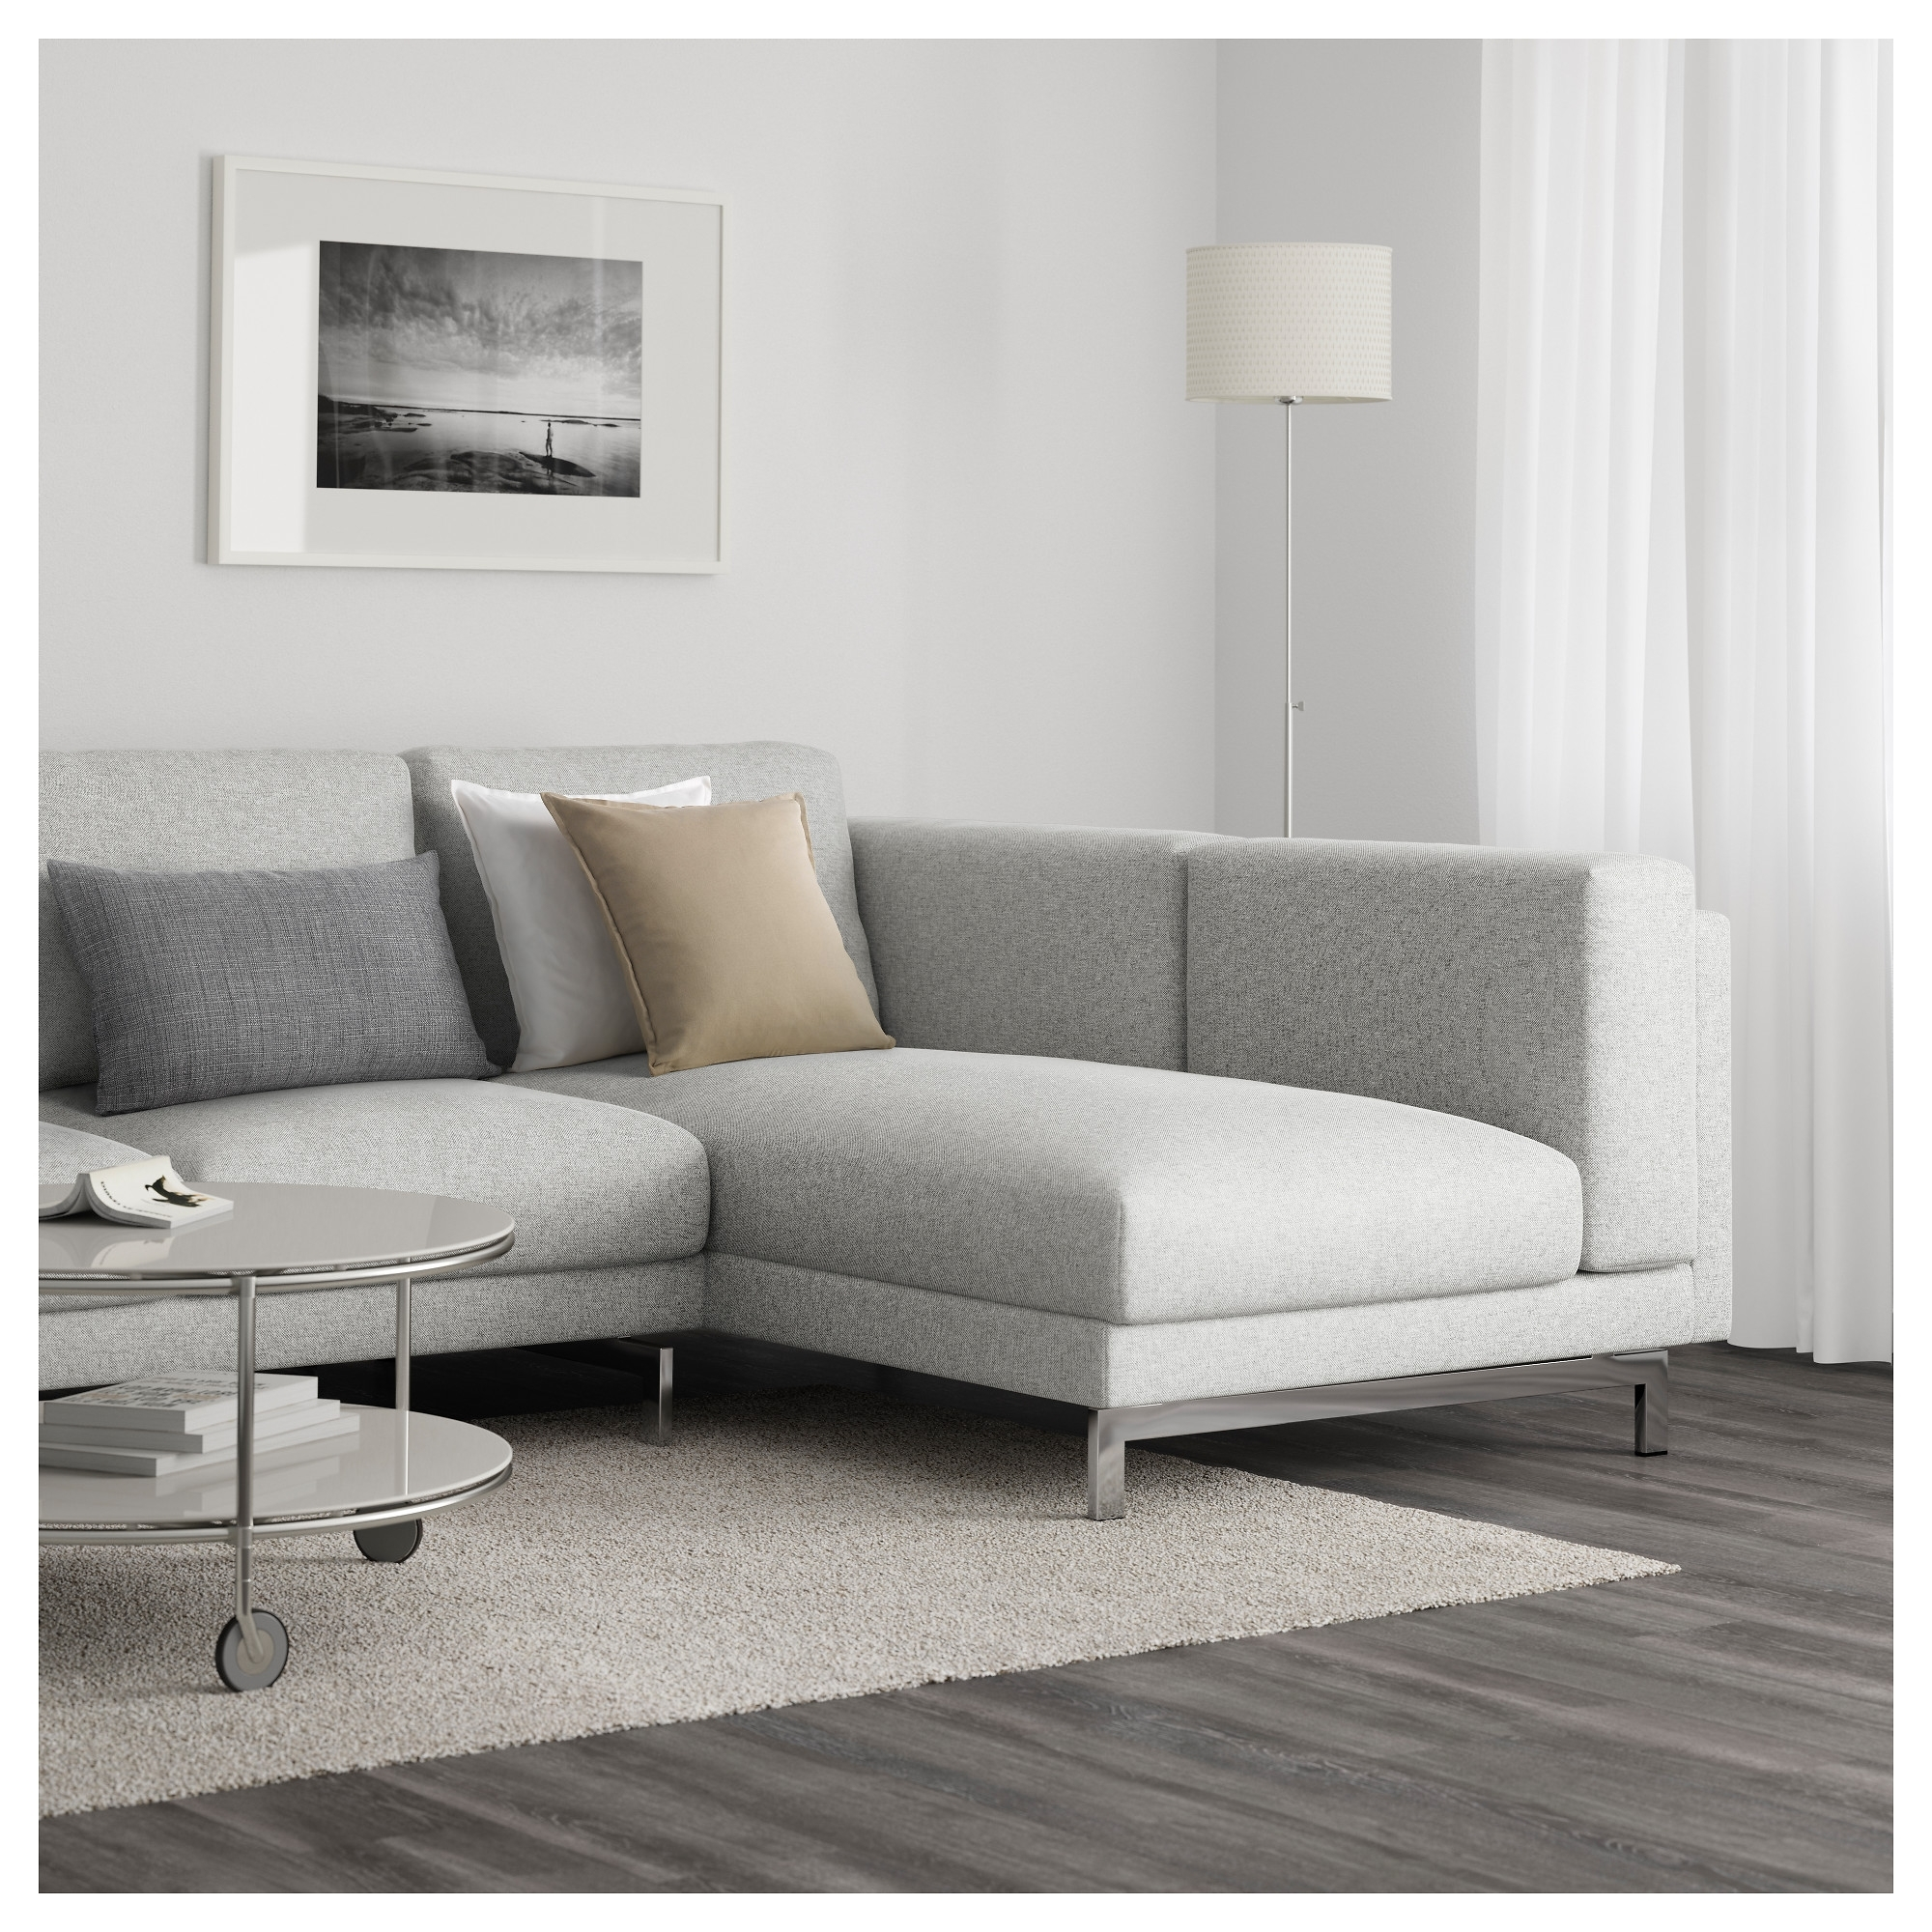 Black And White Sofas Pertaining To Newest Nockeby Sofa – With Chaise, Left/tallmyra White/black, Chrome (View 5 of 20)